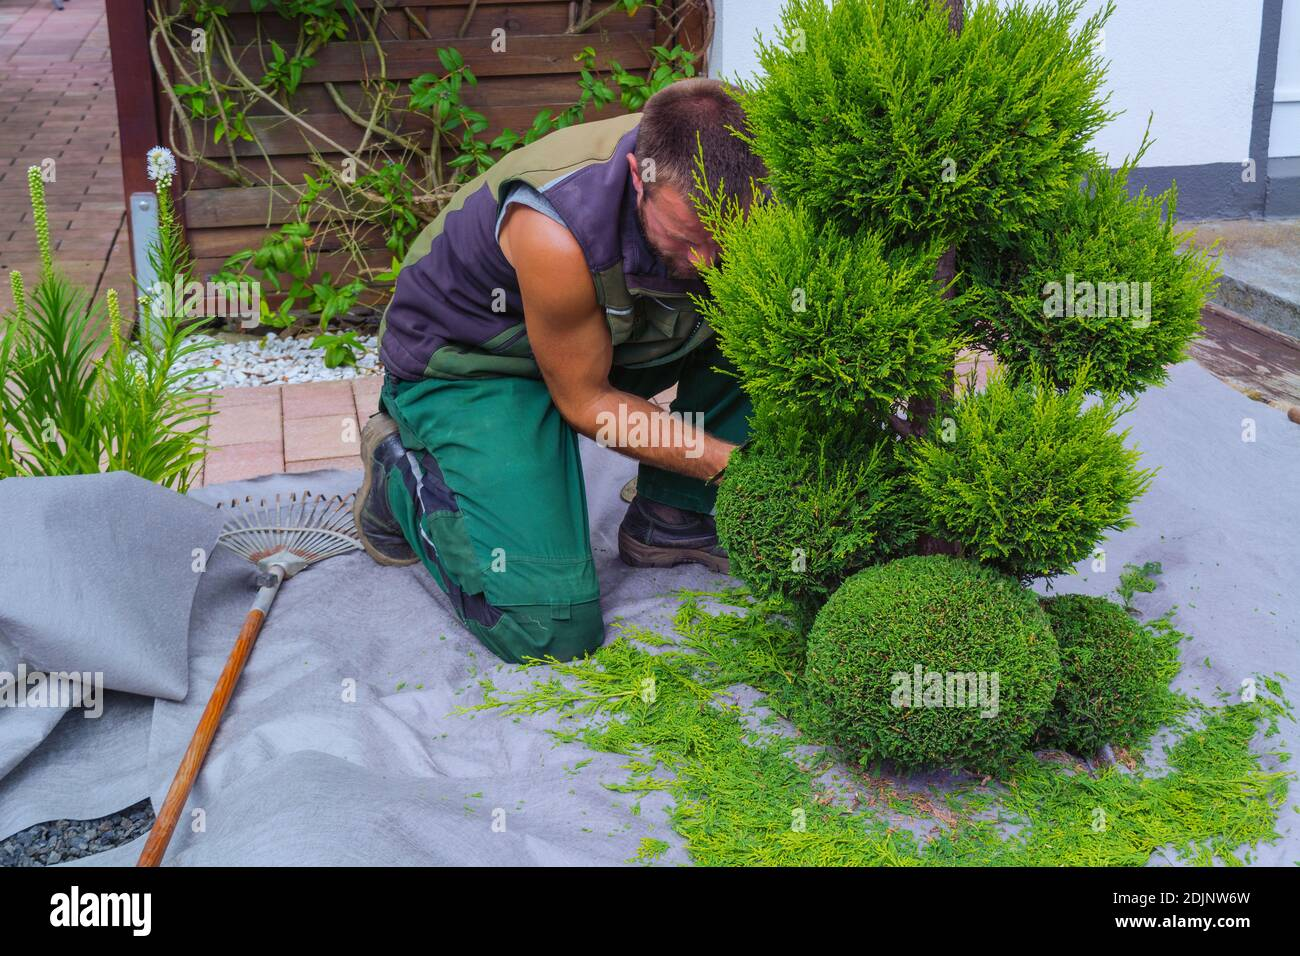 Thuja Smaragd Schneiden Thujahecke High Resolution Stock Photography And Images - Alamy